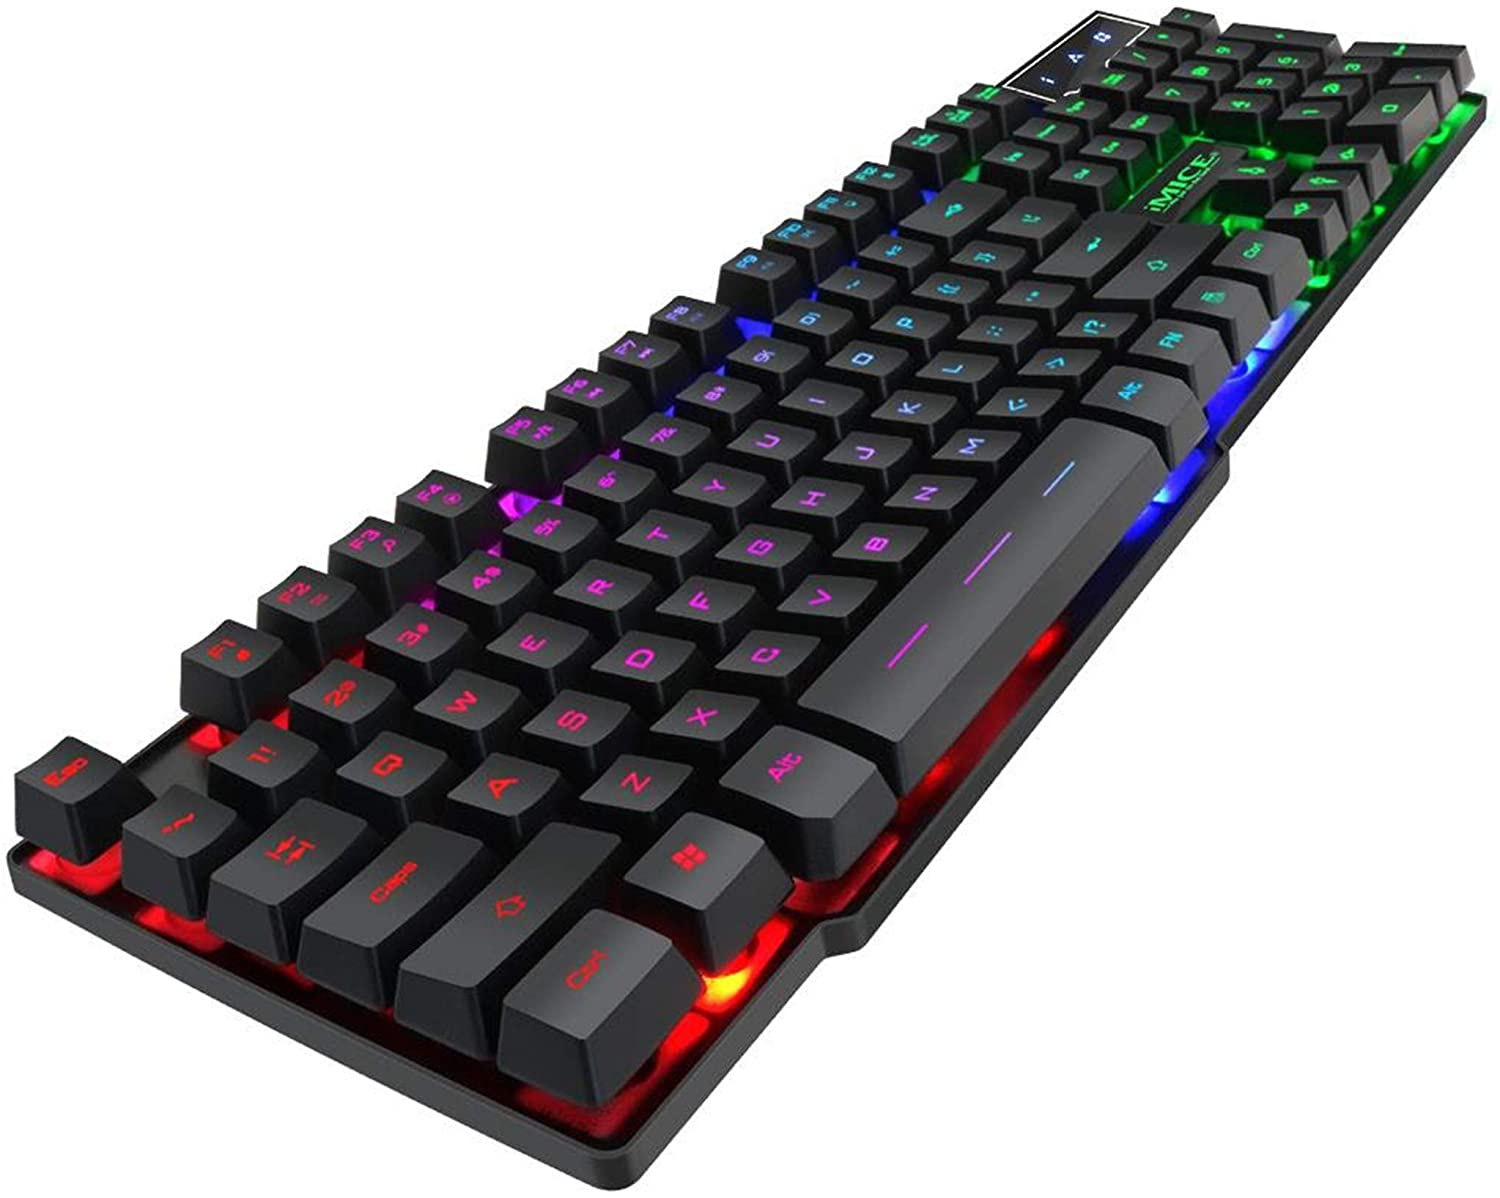 HF-IMAK600: Backlight Suspension Key Mechanical Keyboard Game Wired PC Notebook USB Wired Gaming Keyboard